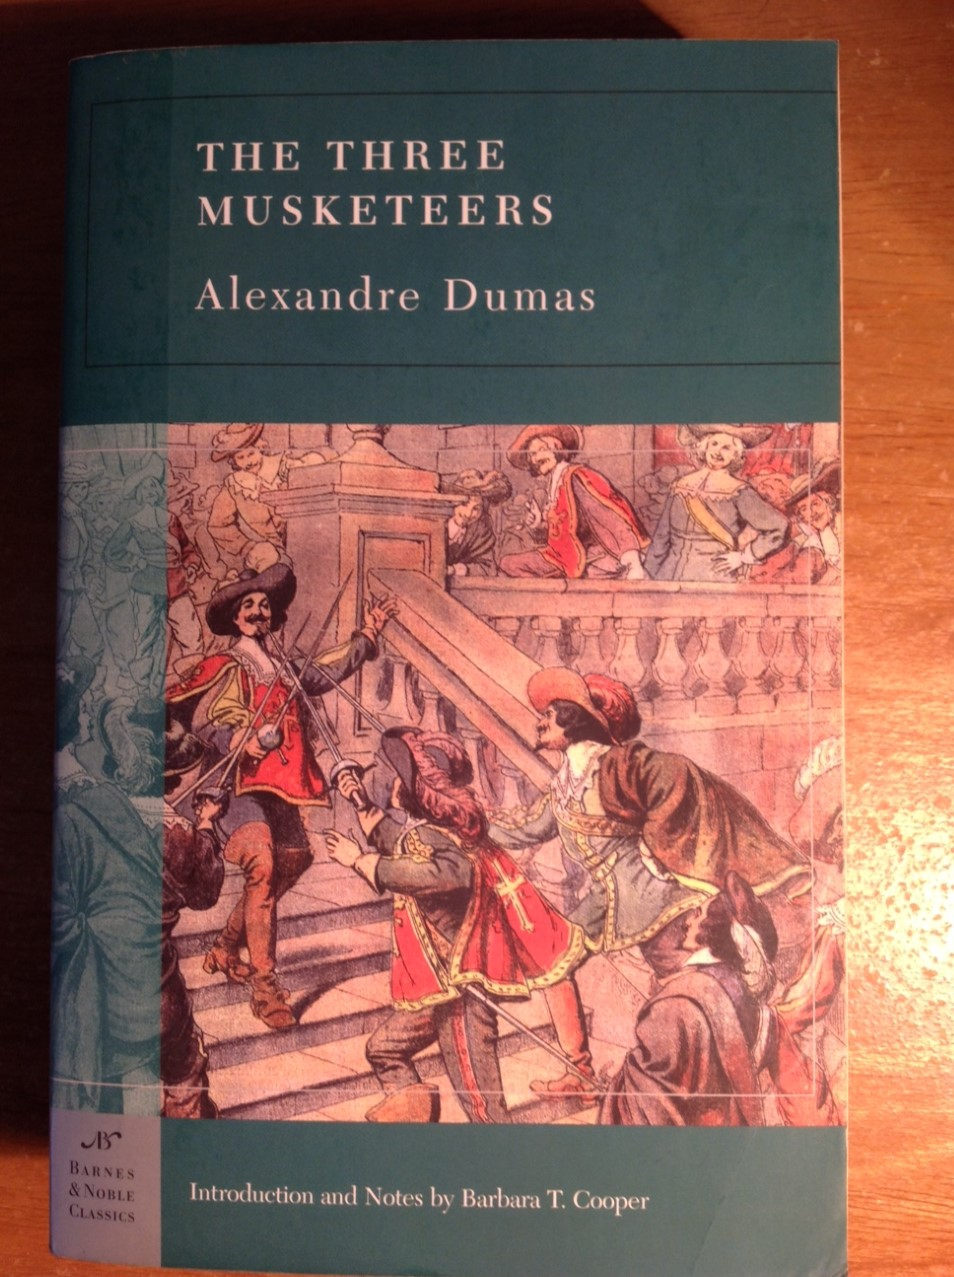 an analysis of the three musketeers book by alexandre dumas Three musketeers(borders classics) by dumas, alexandre (translated by william robson) and a great selection of similar used, new and collectible books available now at abebookscom.